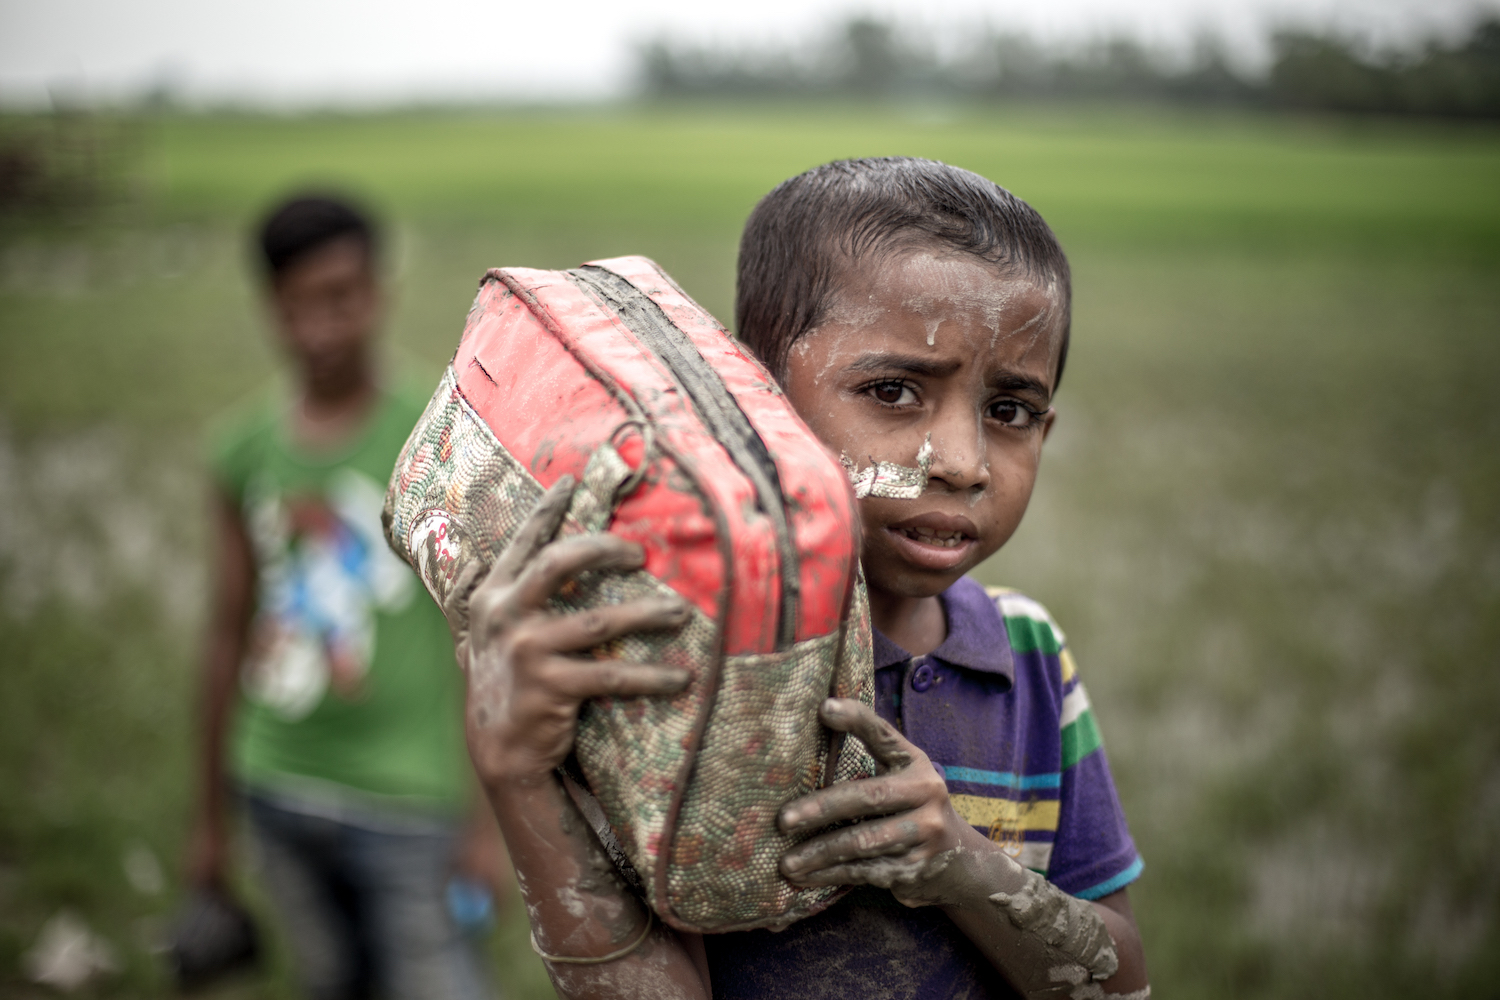 In Cox's Bazar, Bangladesh, tens of thousands of refugees flee over the border from Burma.